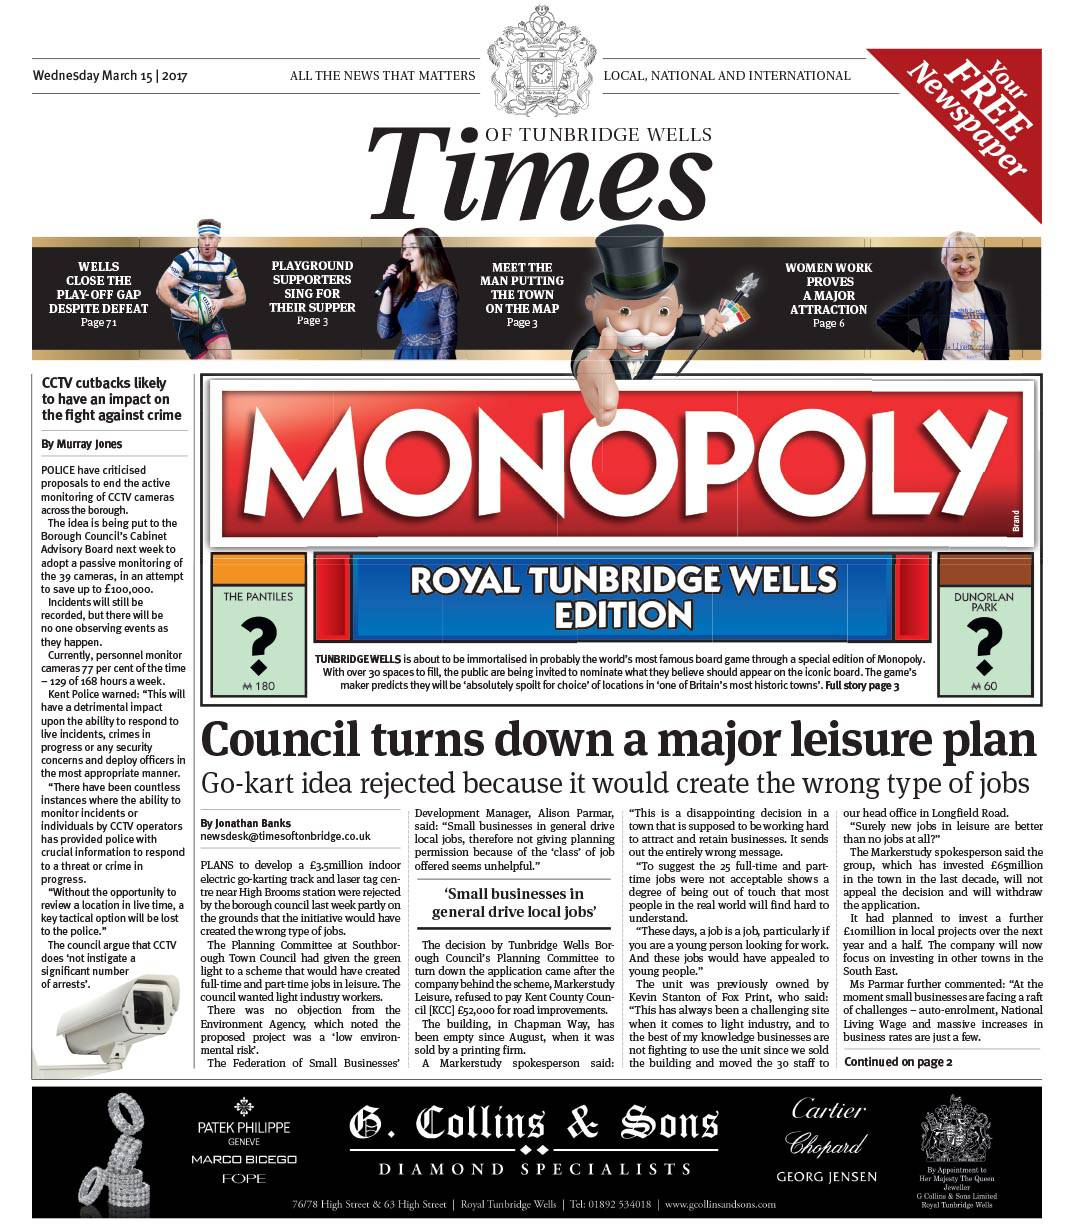 Read the Times of Tunbridge Wells 15th March 2017